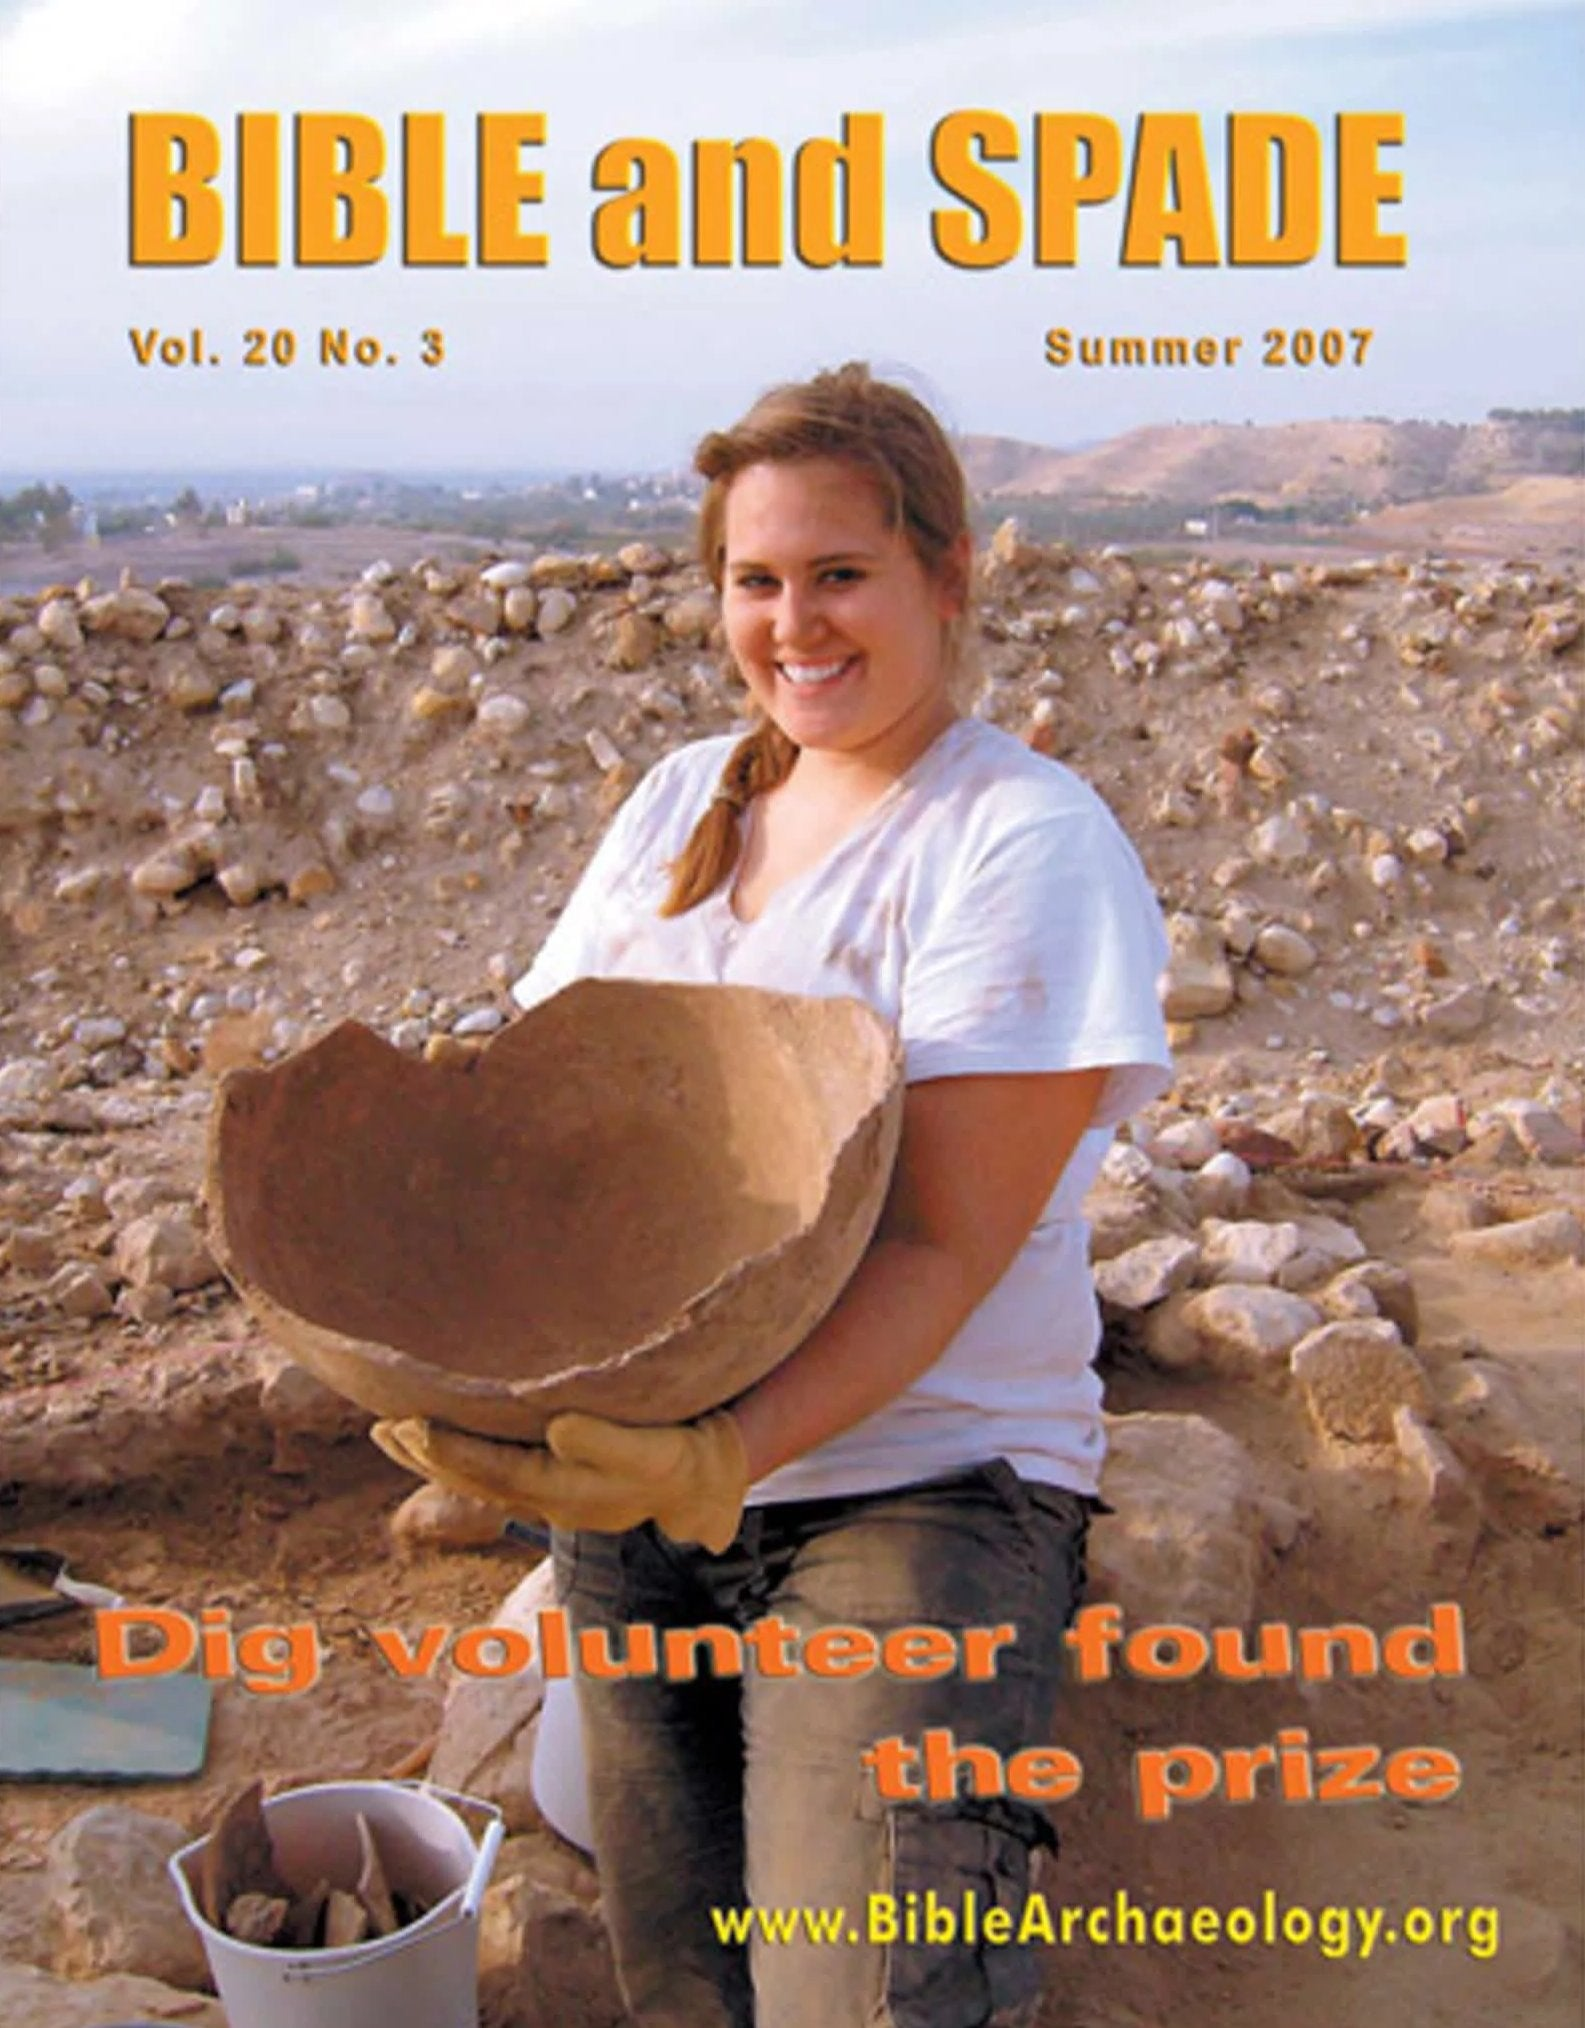 Four issues of BIBLE and SPADE produced in 2007